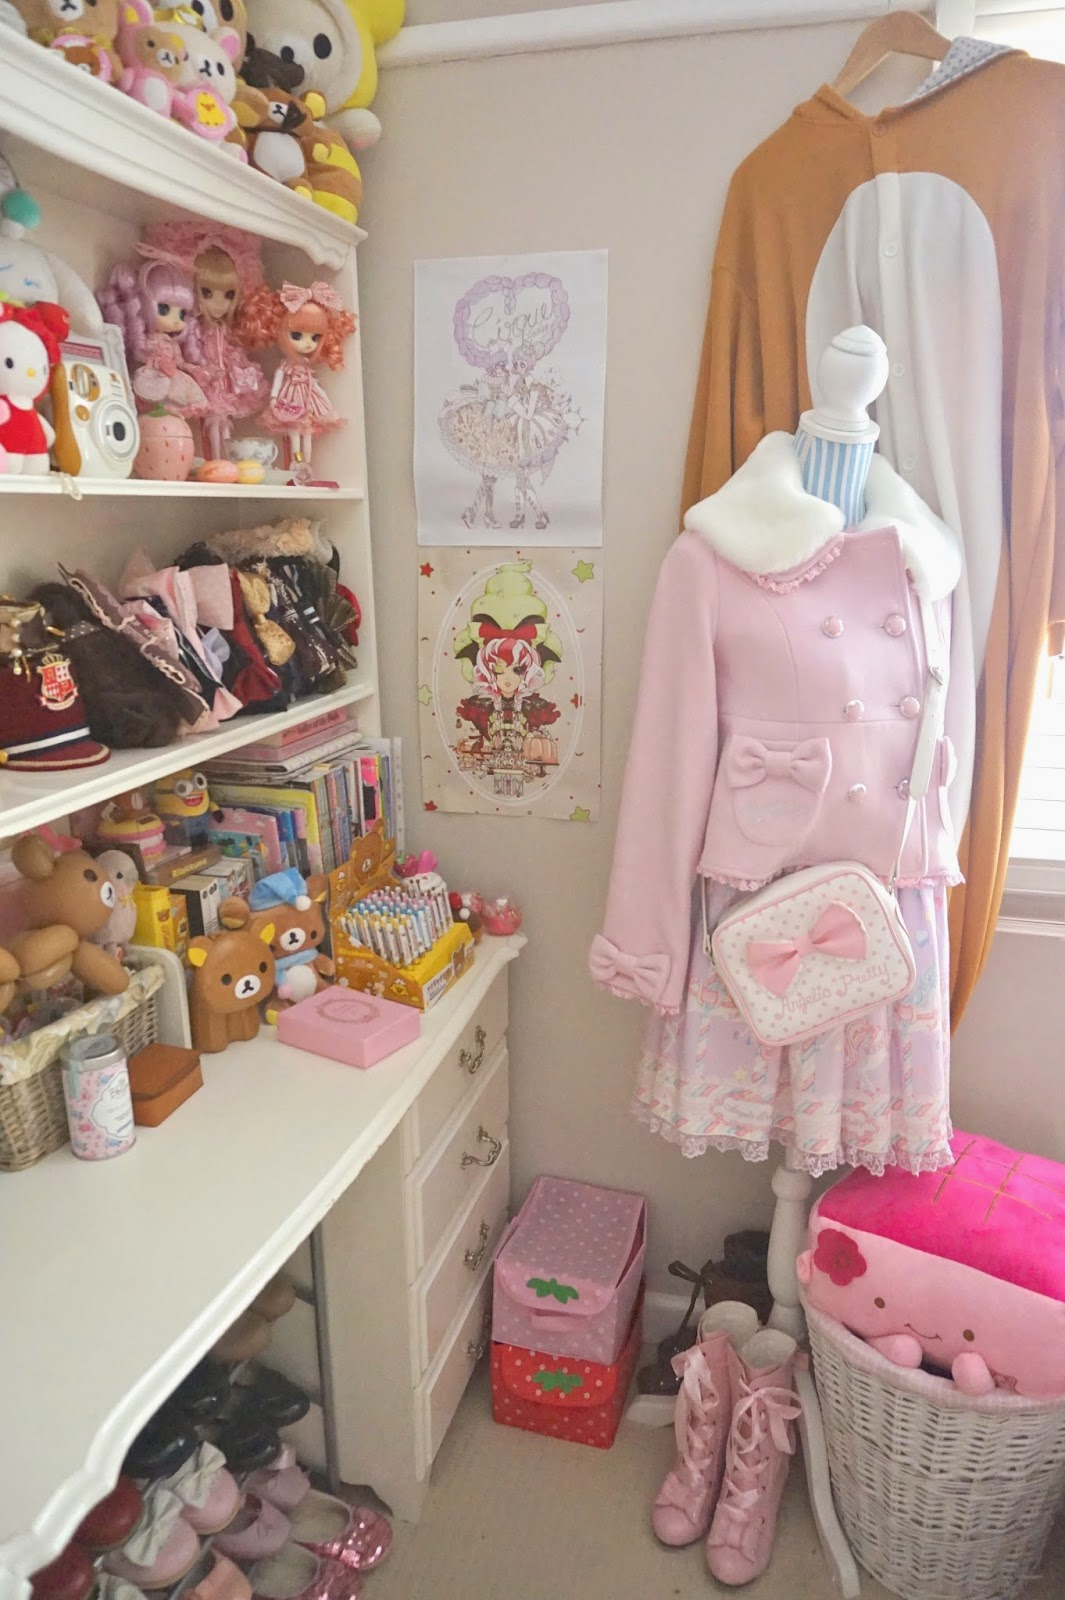 milkyfawn a lolita blog welcome to my bedroom welcome to my bedroom room tour amp renovation leonie sii